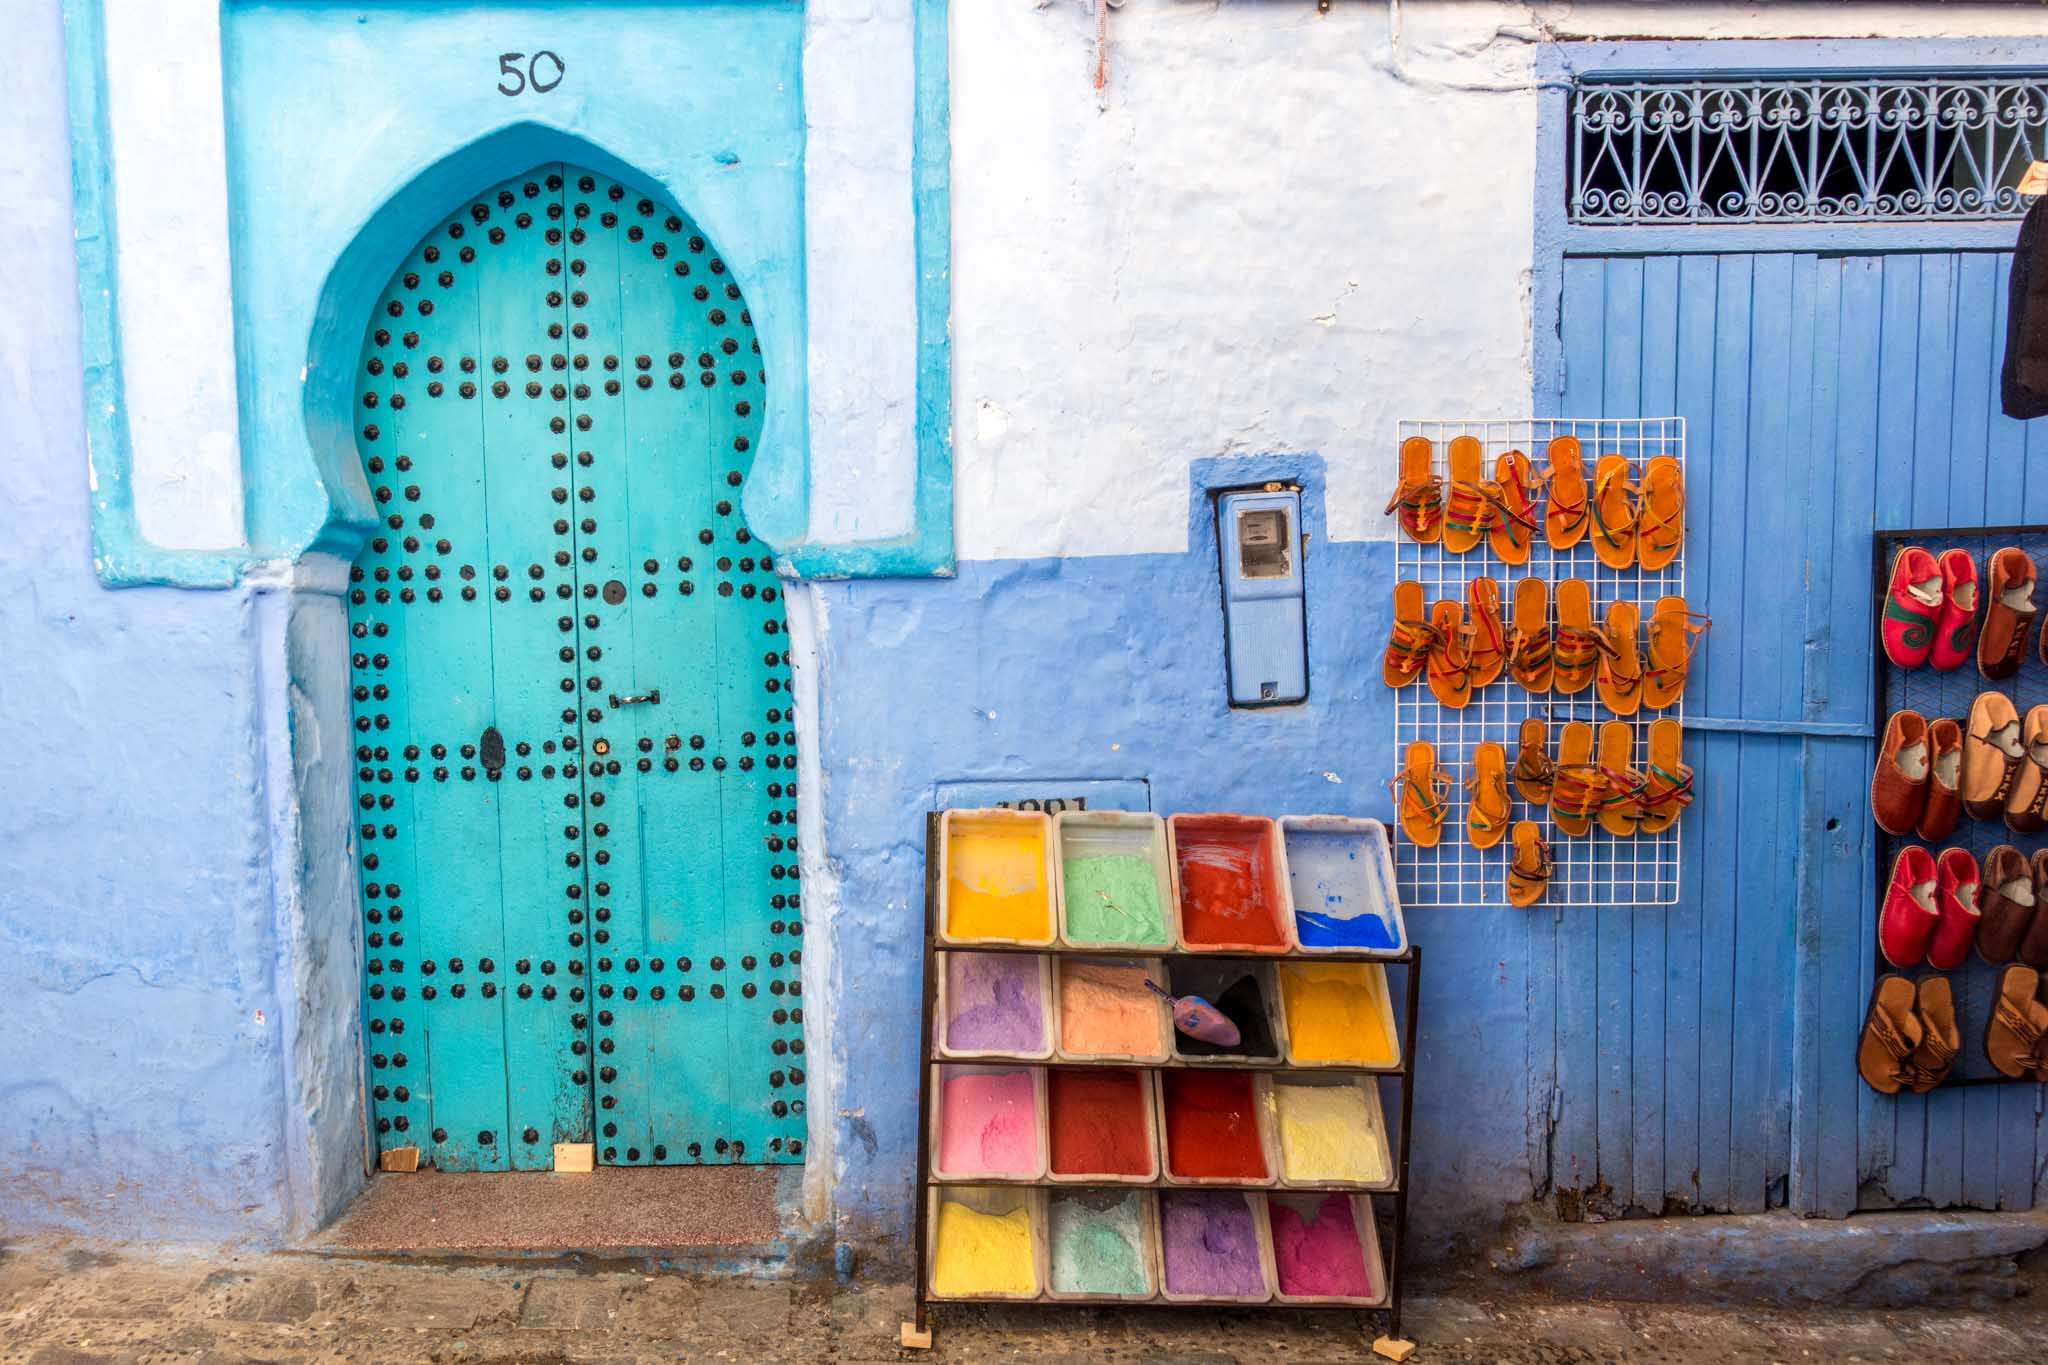 Multi-colored pigments and sandals for sale next to a turquoise door